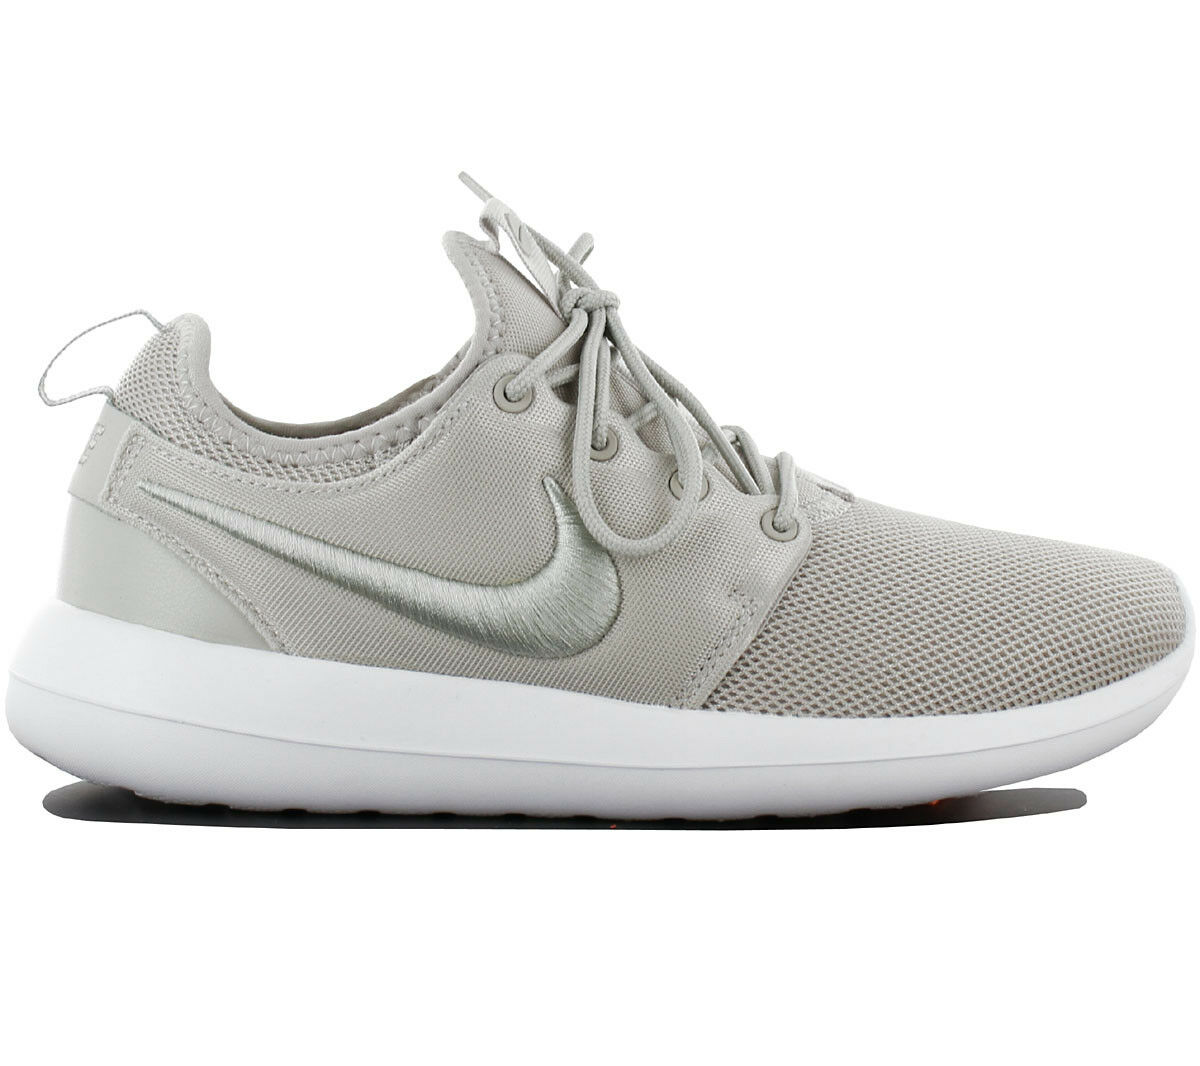 Nike Roshe Two Br Breeze Ladies Sneaker Shoes Grey One Gym Shoe New